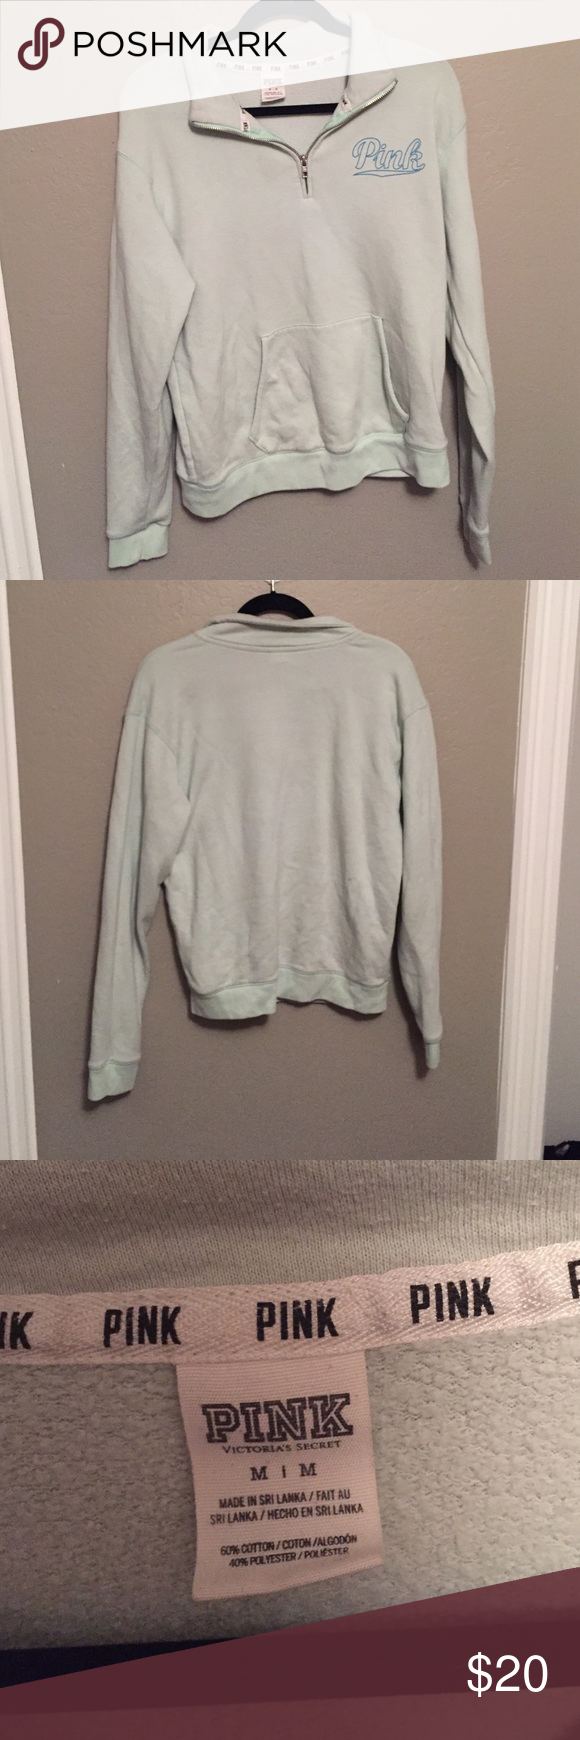 Victoria's Secret Pink sweater Light green sweater from Pink! So ...